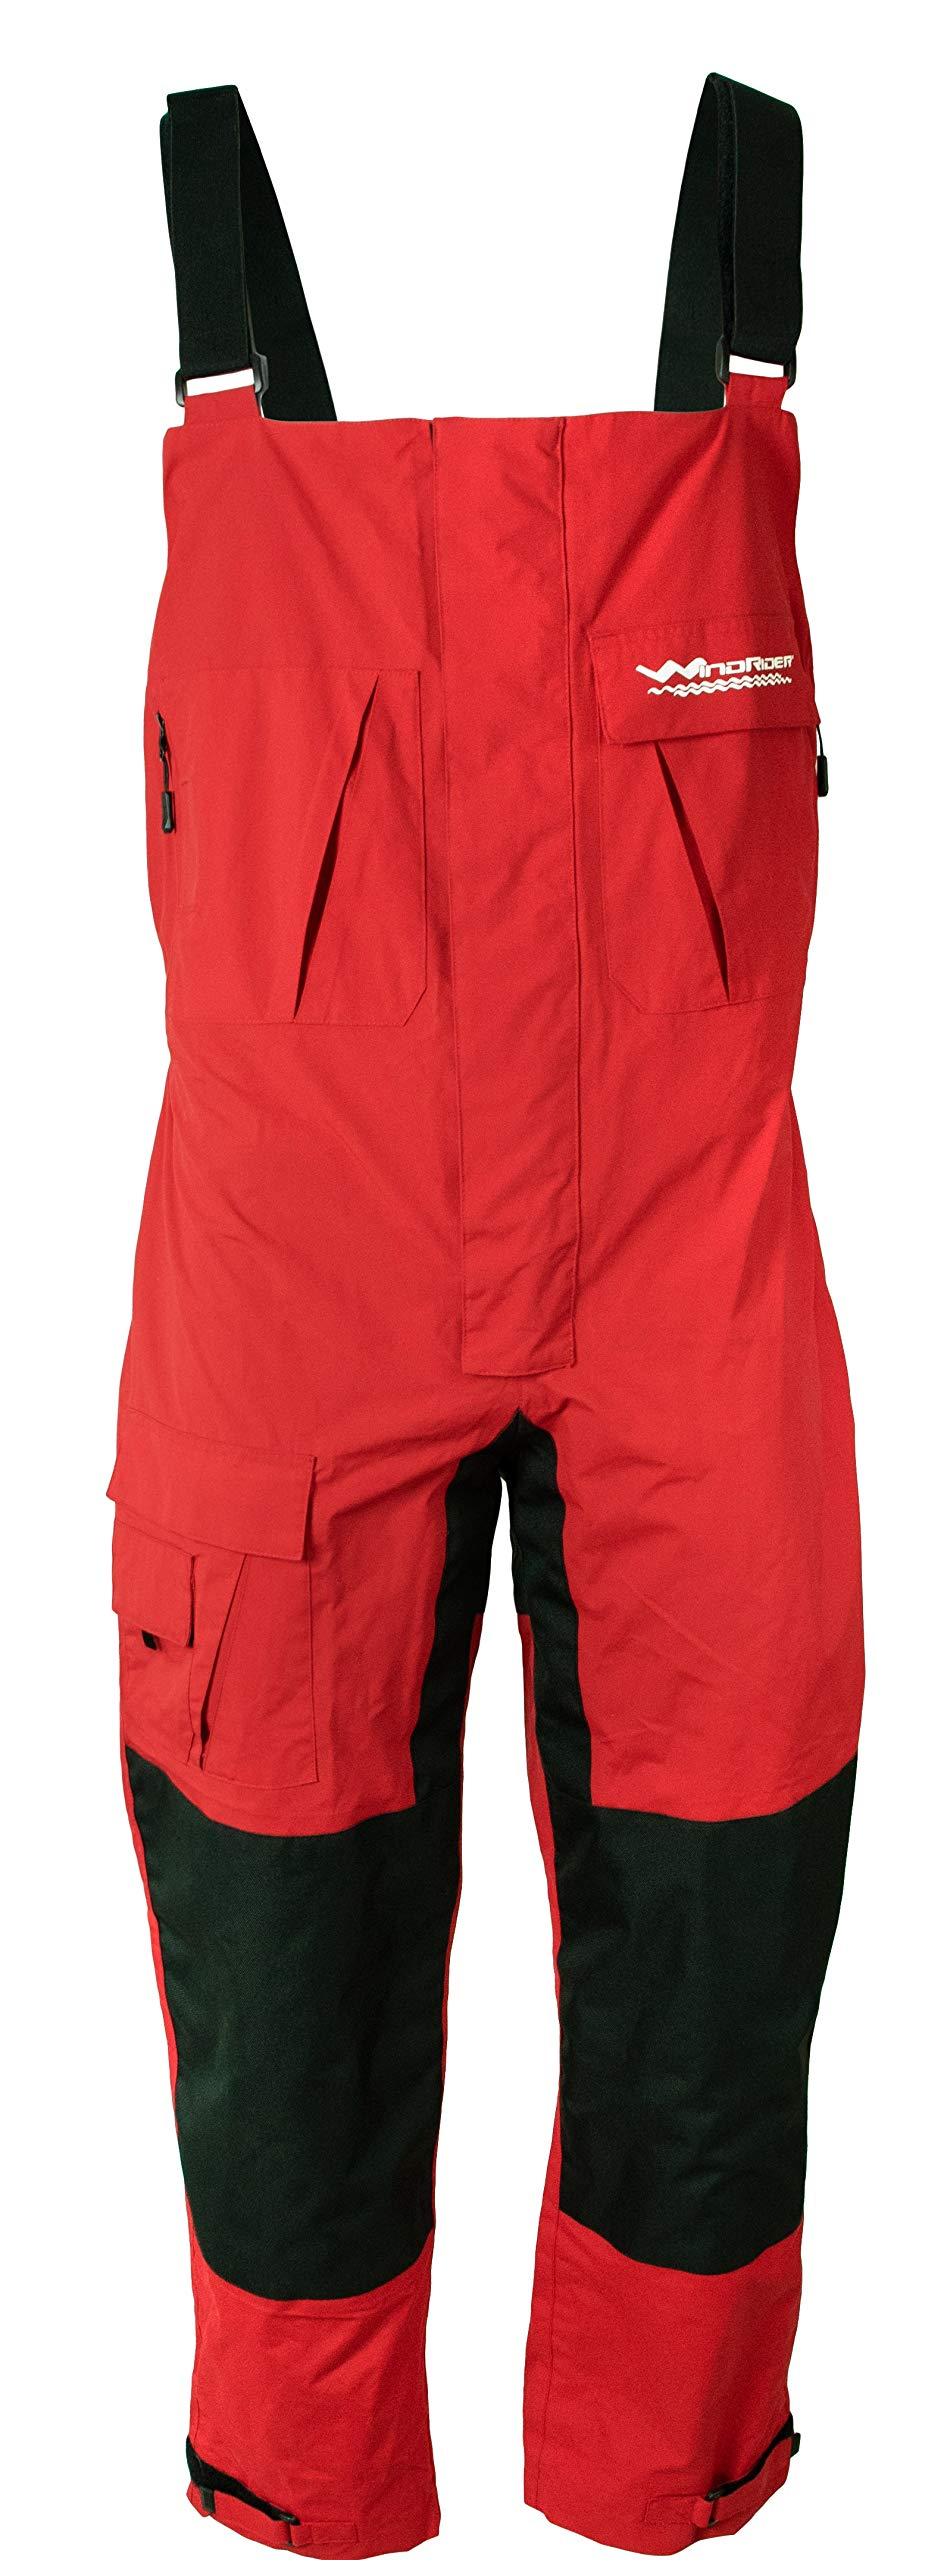 WindRider Pro Foul Weather Gear - Fishing Bibs/Sailing Bibs - 6 Pockets w/Hand Warming Chest Pockets - Waterproof, Windproof & Breathable - Reinforced Seat, Knees - High Chest (Medium, Red) by WindRider